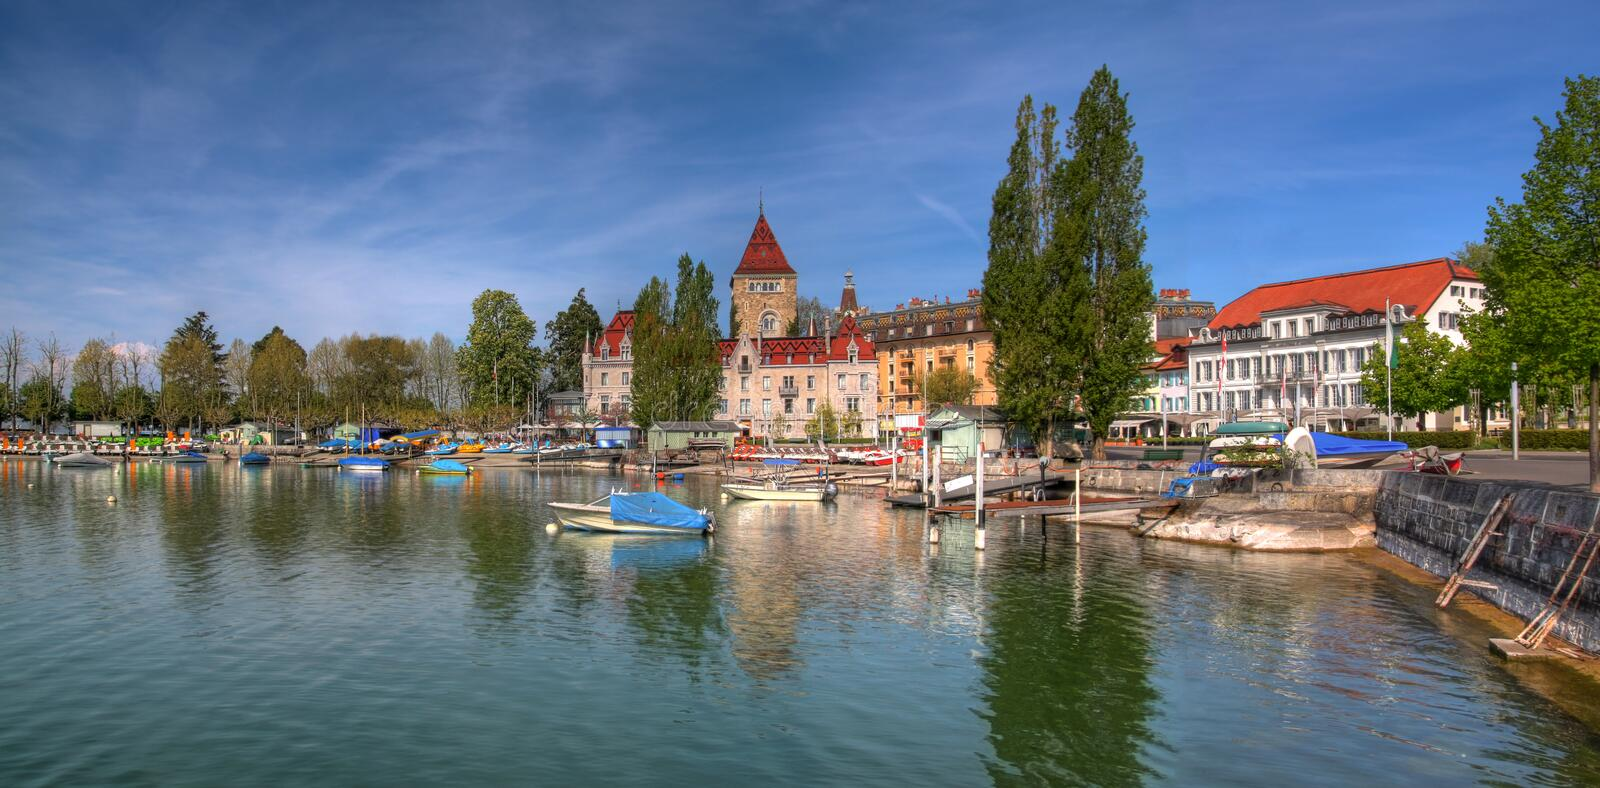 Download Ouchy Panorama HDR, Lausanne, Switzerland Stock Photo - Image: 10139676